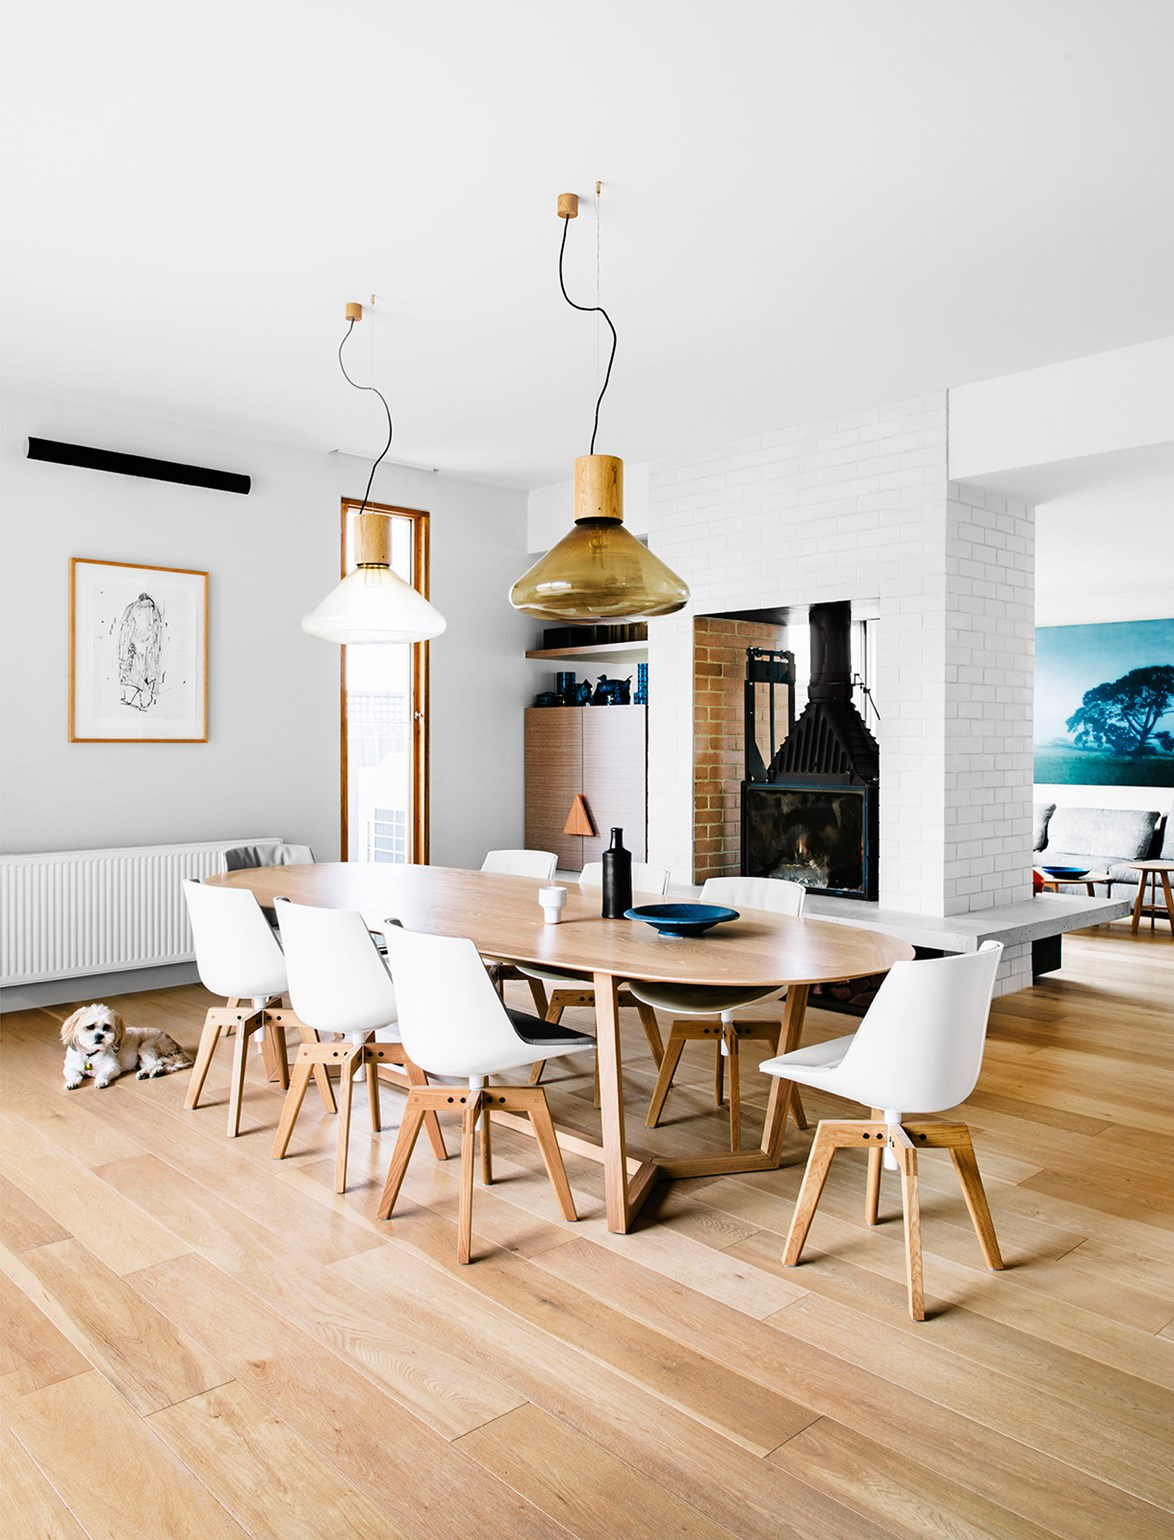 When combining timber floors and furniture, keep timber tones the same for a cohesive look.